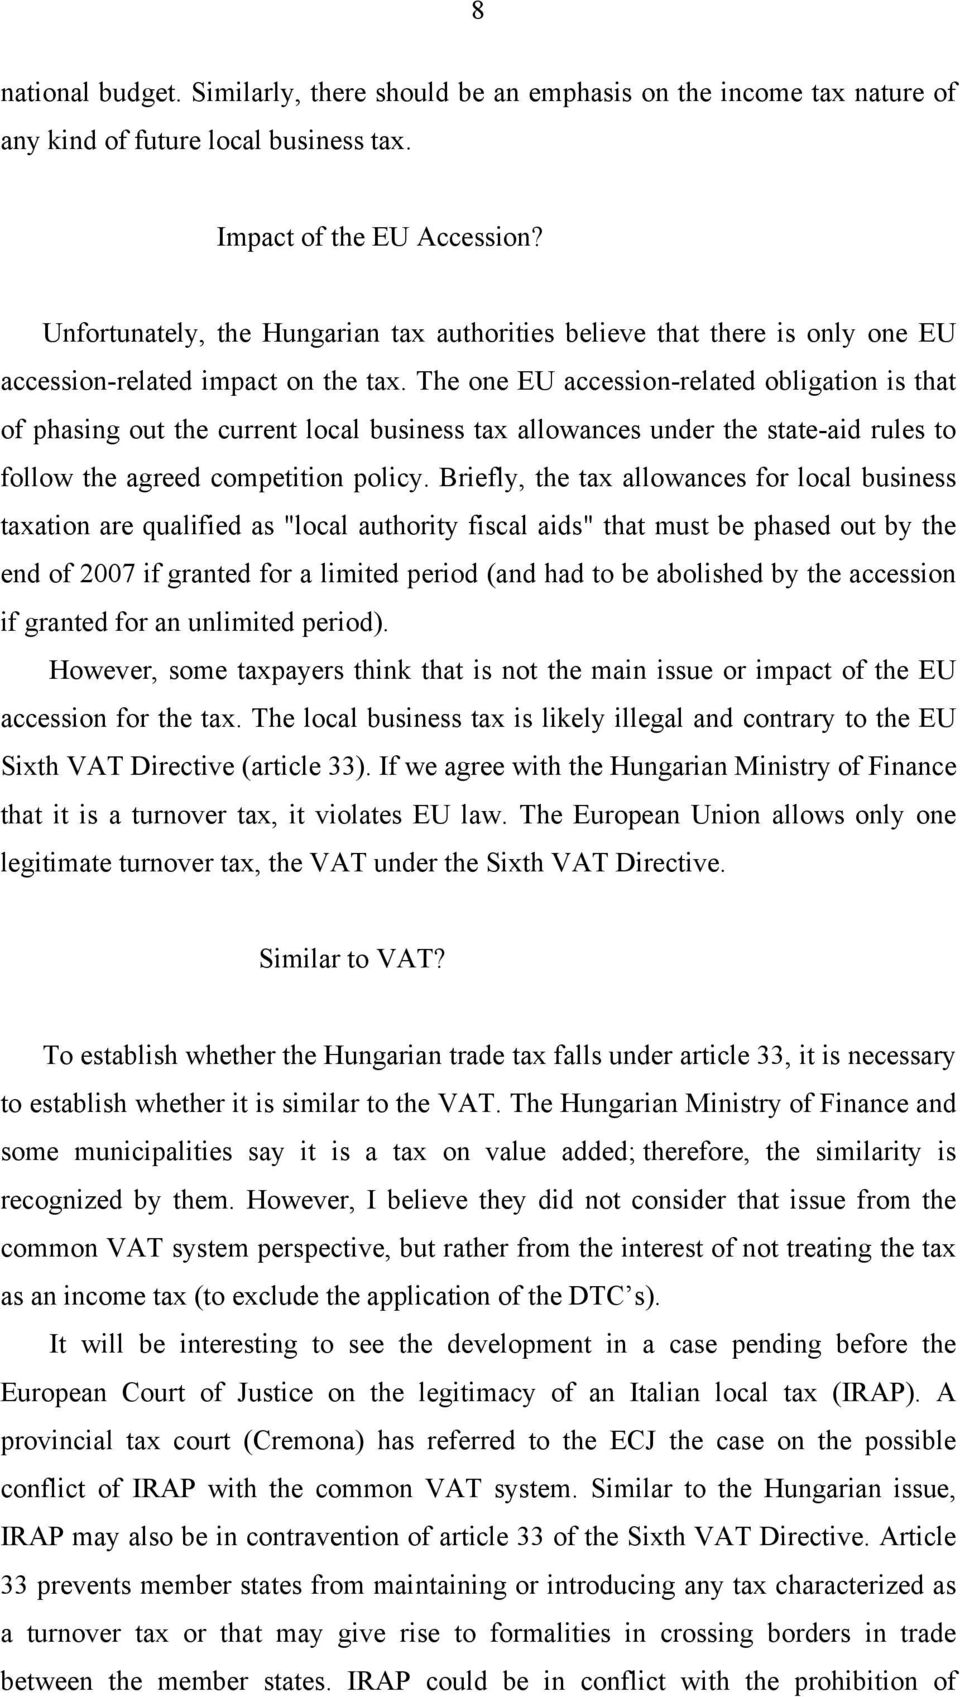 The one EU accession-related obligation is that of phasing out the current local business tax allowances under the state-aid rules to follow the agreed competition policy.